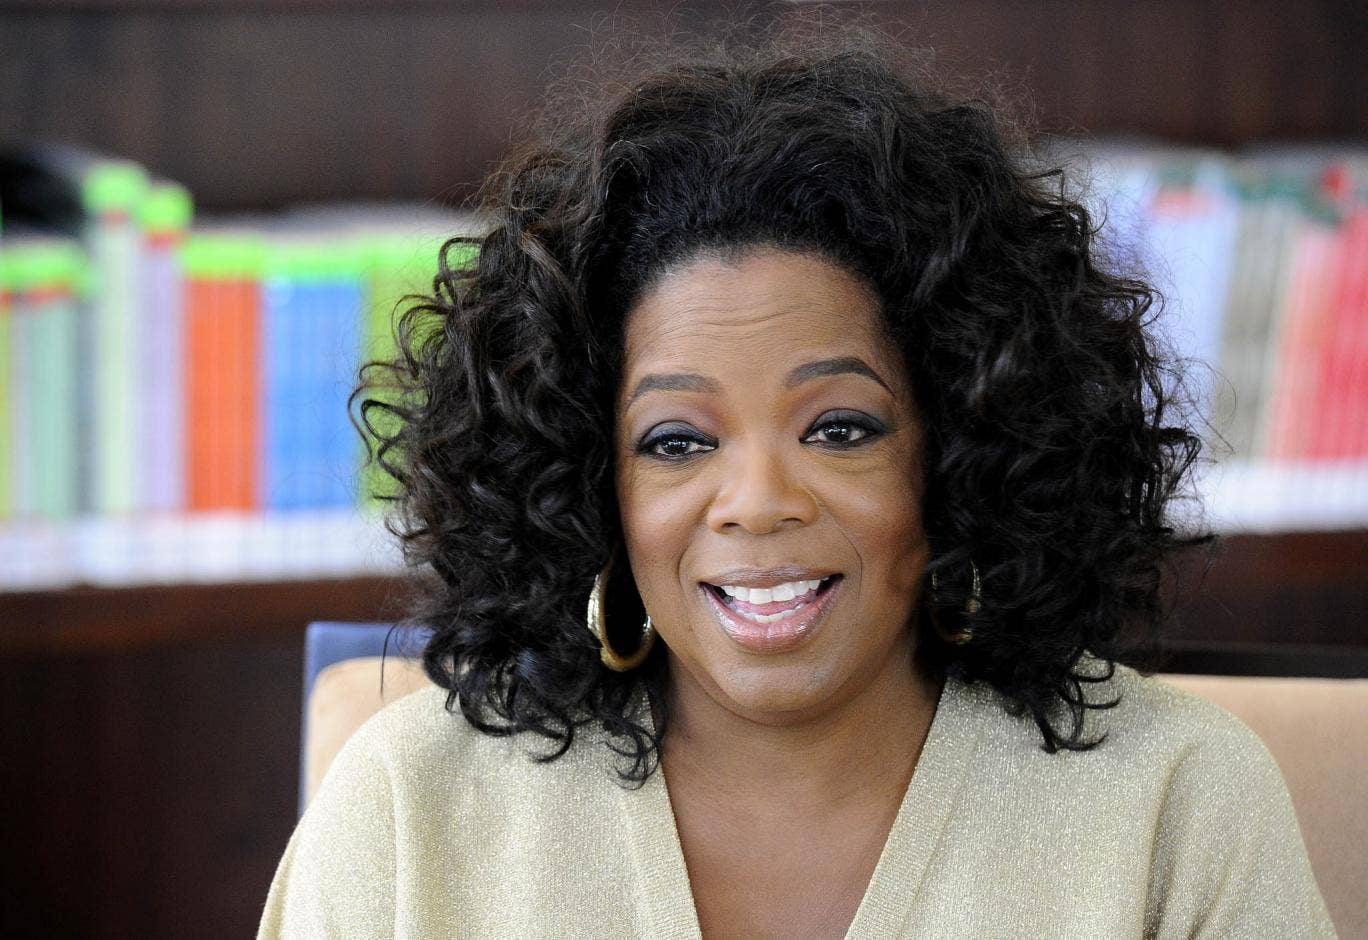 Oprah Winfrey says she was a victim of racism during a recent visit to Switzerland.